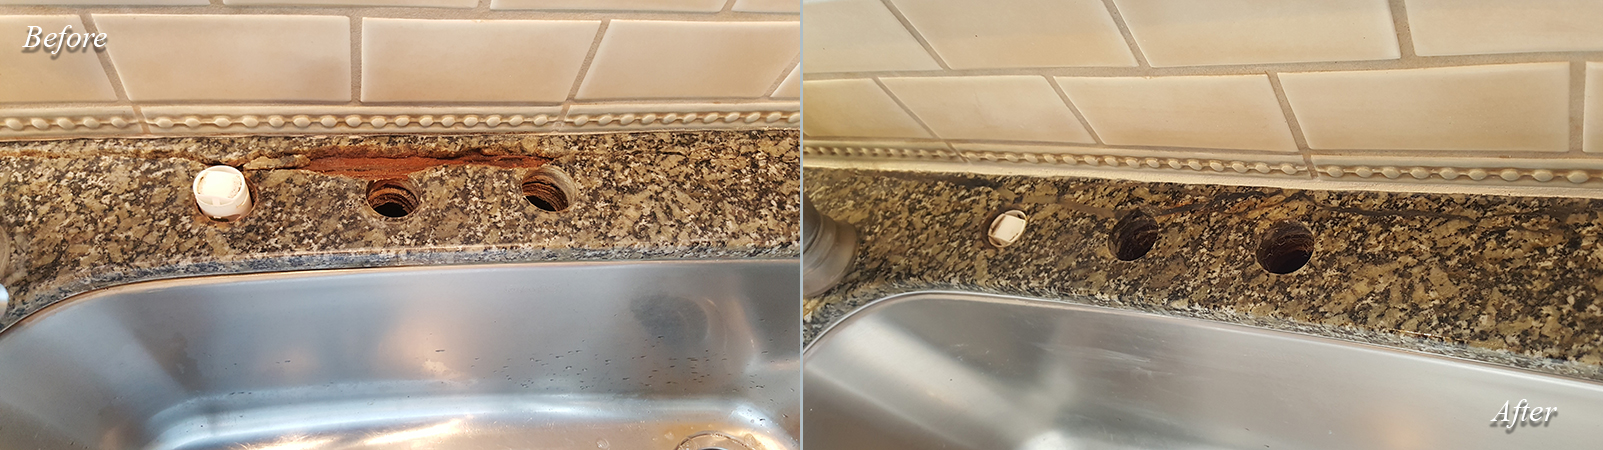 Shower Tile Repair Grout Repairs Floor Resurfacing Countertop And Stone In San Luis Obispo County Are Things That Save